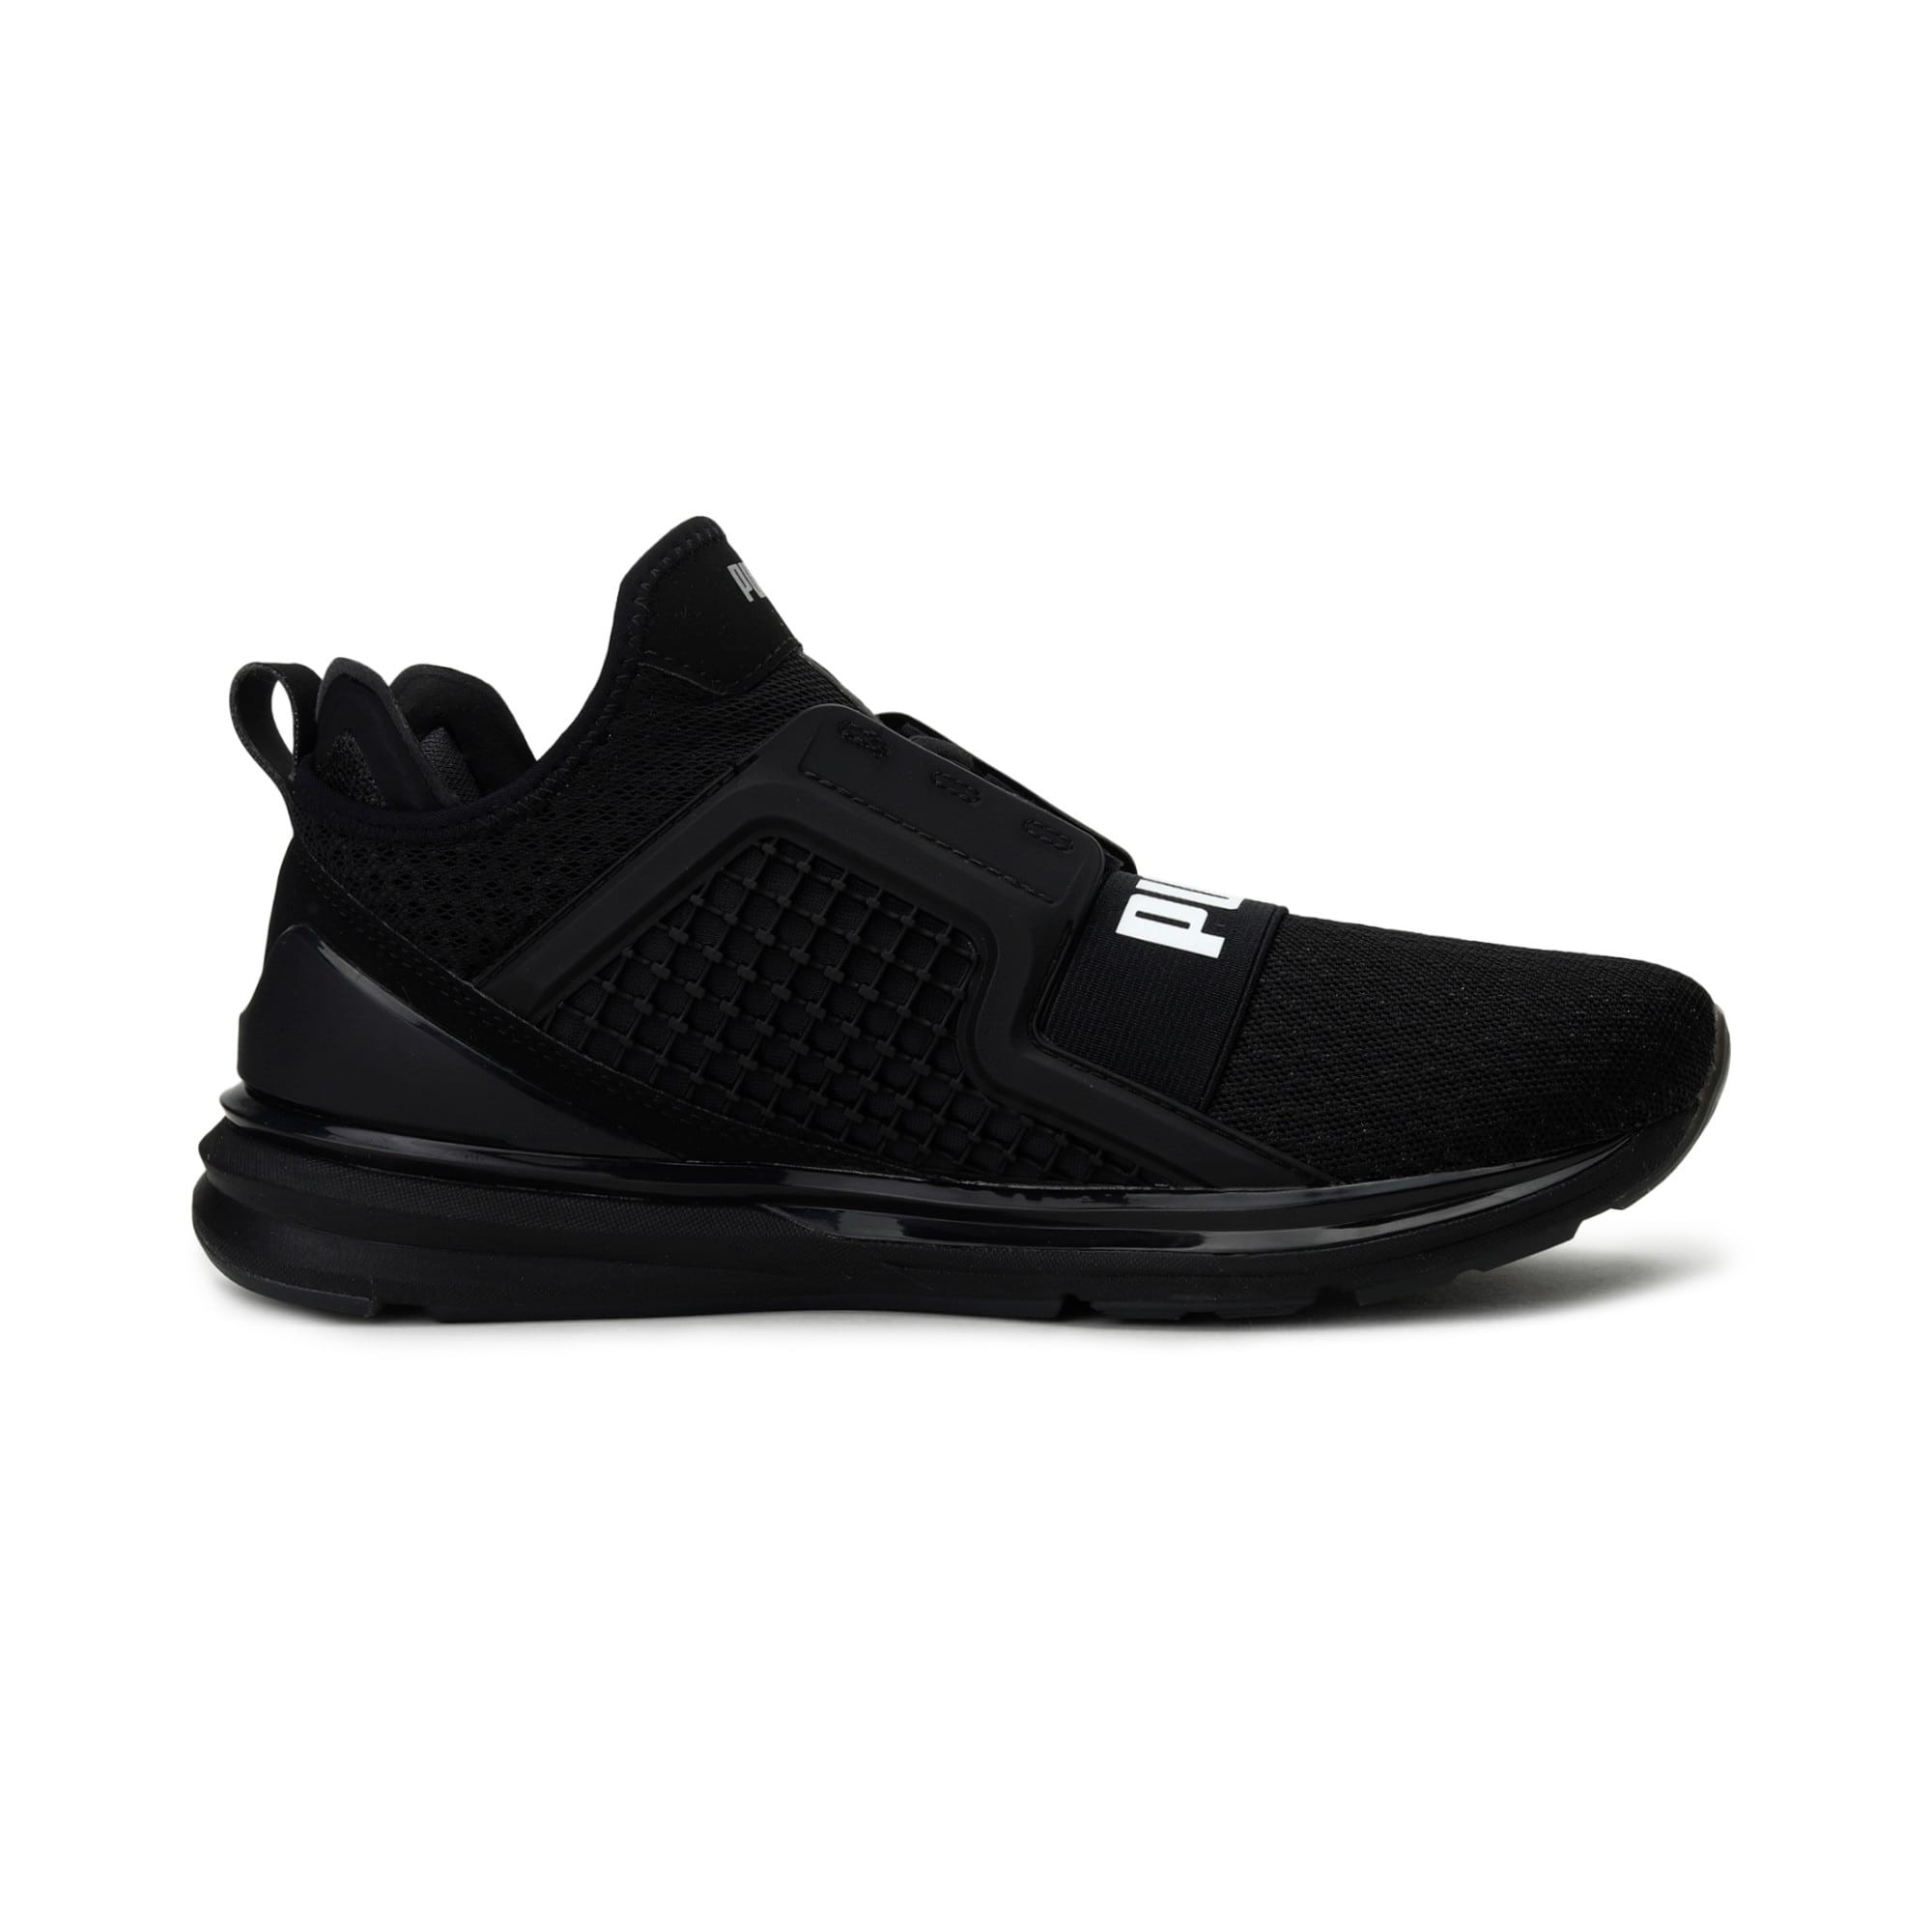 Thumbnail 6 of IGNITE Limitless Men's Running Shoes, Puma Black, medium-IND